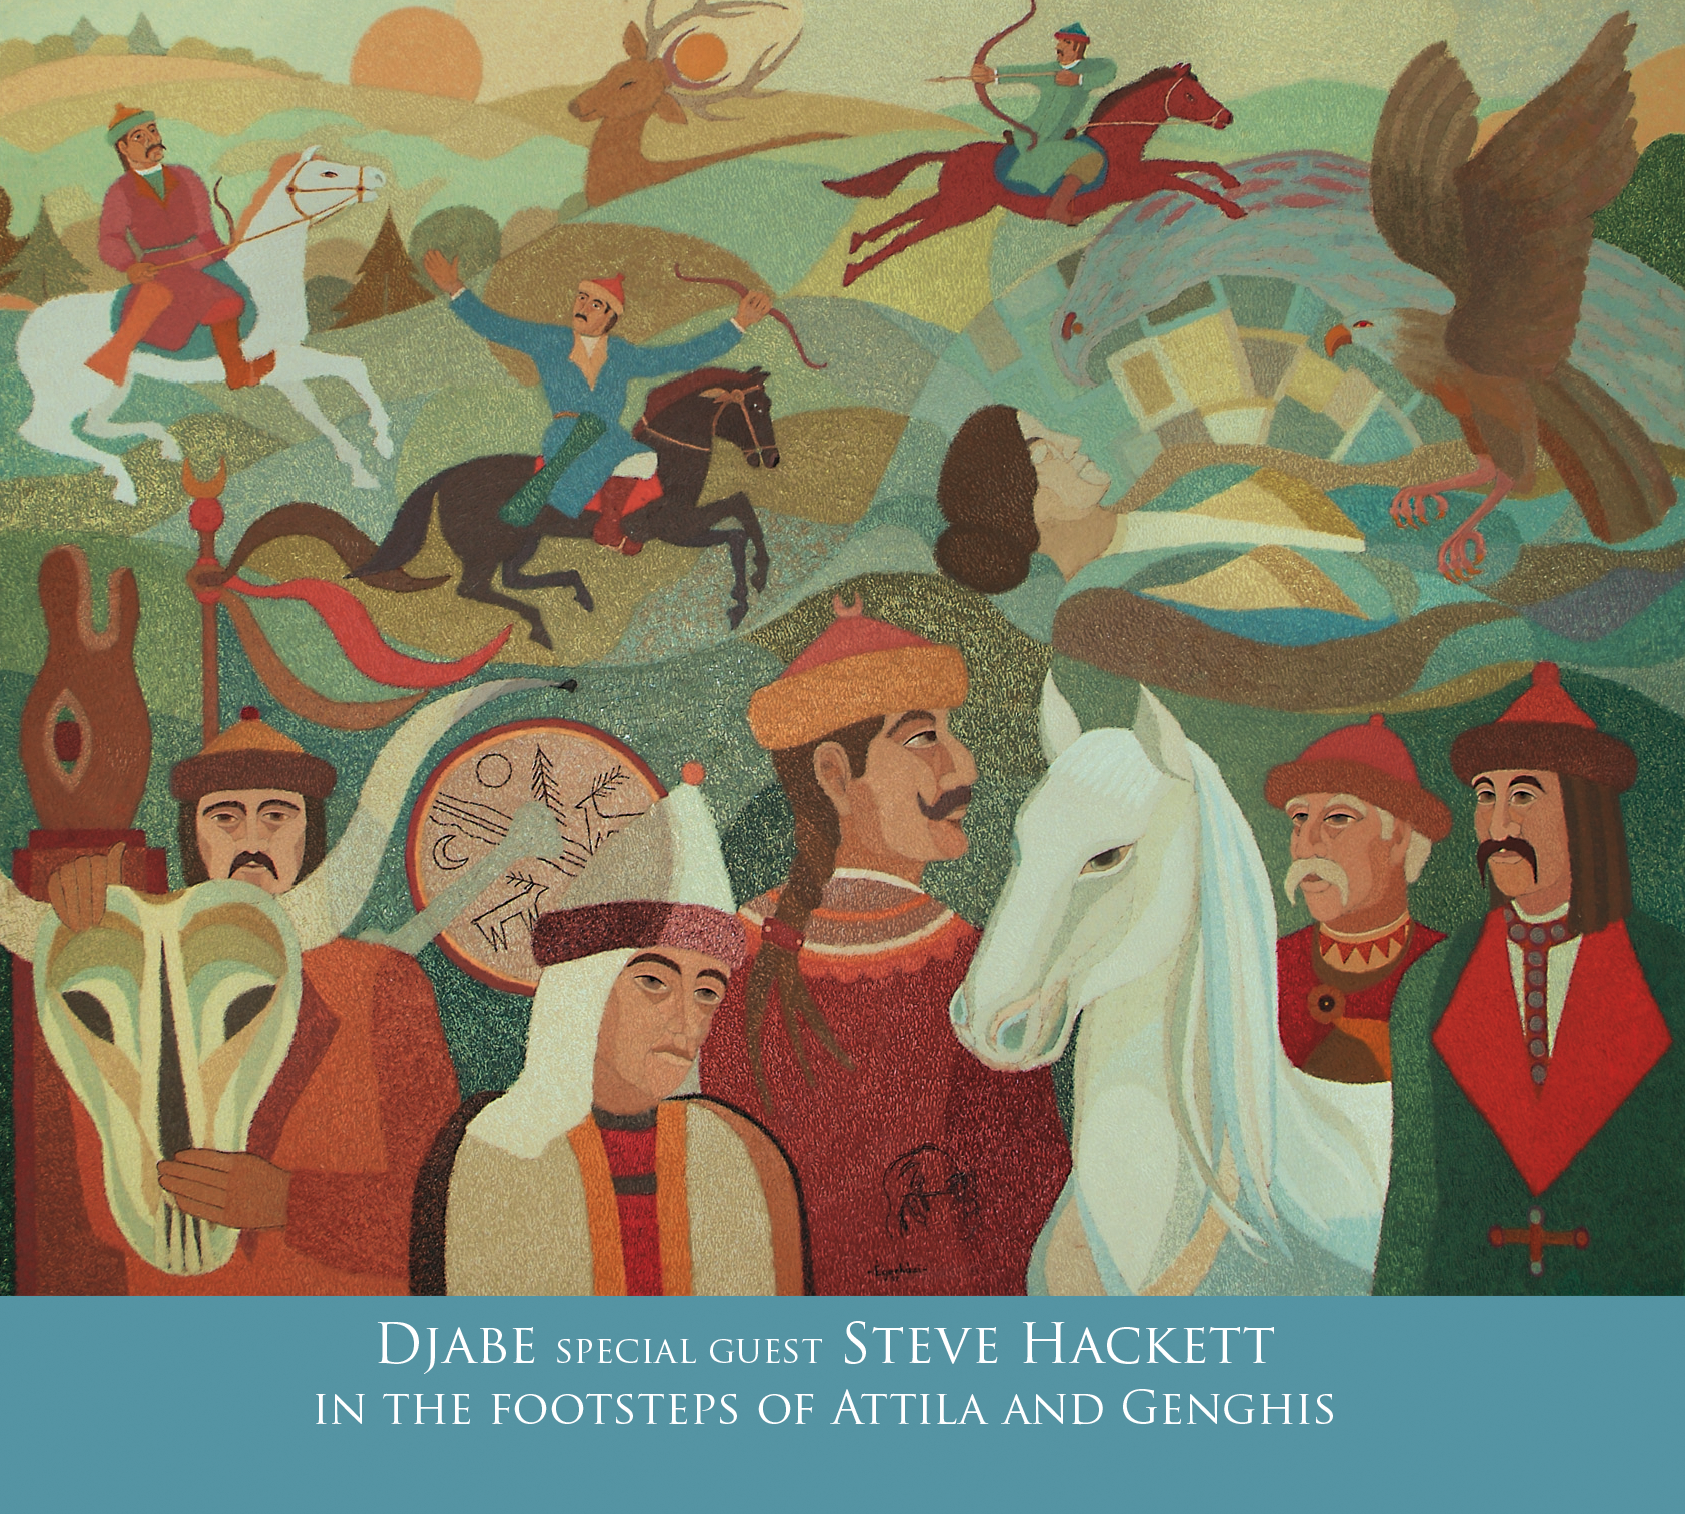 Djabe special guest Steve Hackett - In the footsteps of Attila and Genghis 2 CD